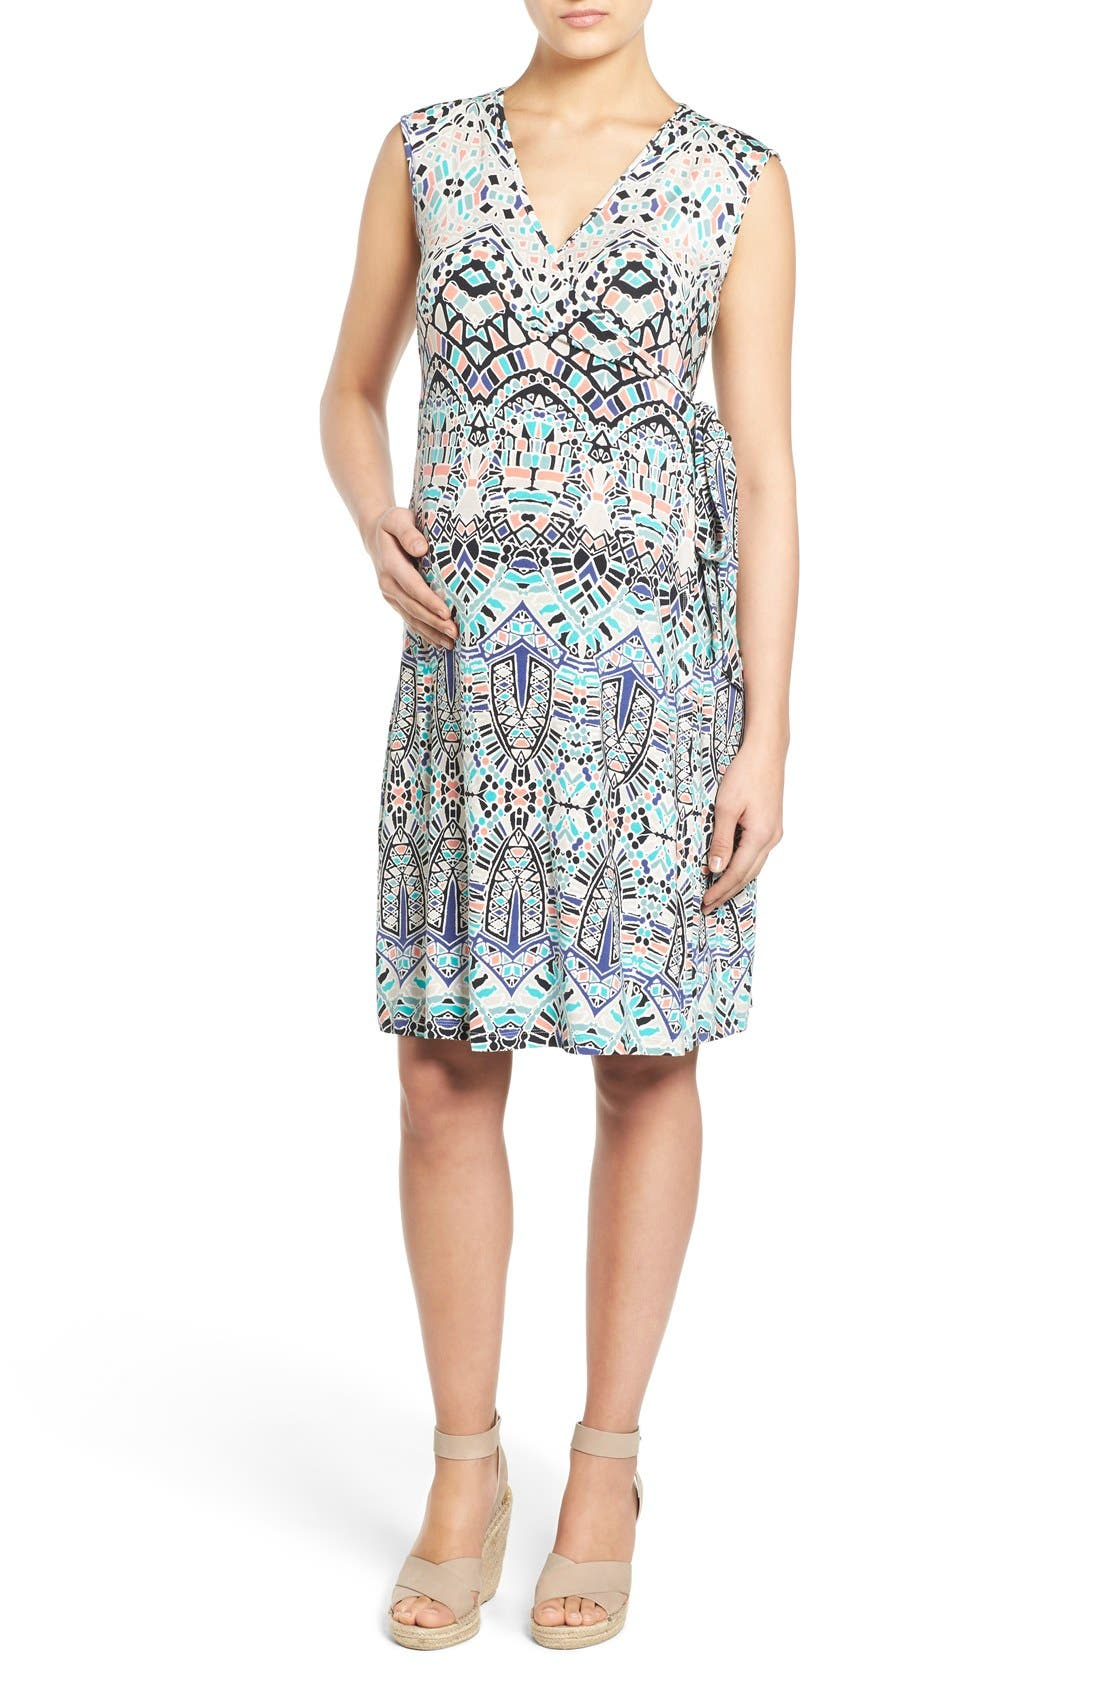 TART MATERNITY, 'Charmaine' Print Jersey Maternity Wrap Dress, Main thumbnail 1, color, INK TILES